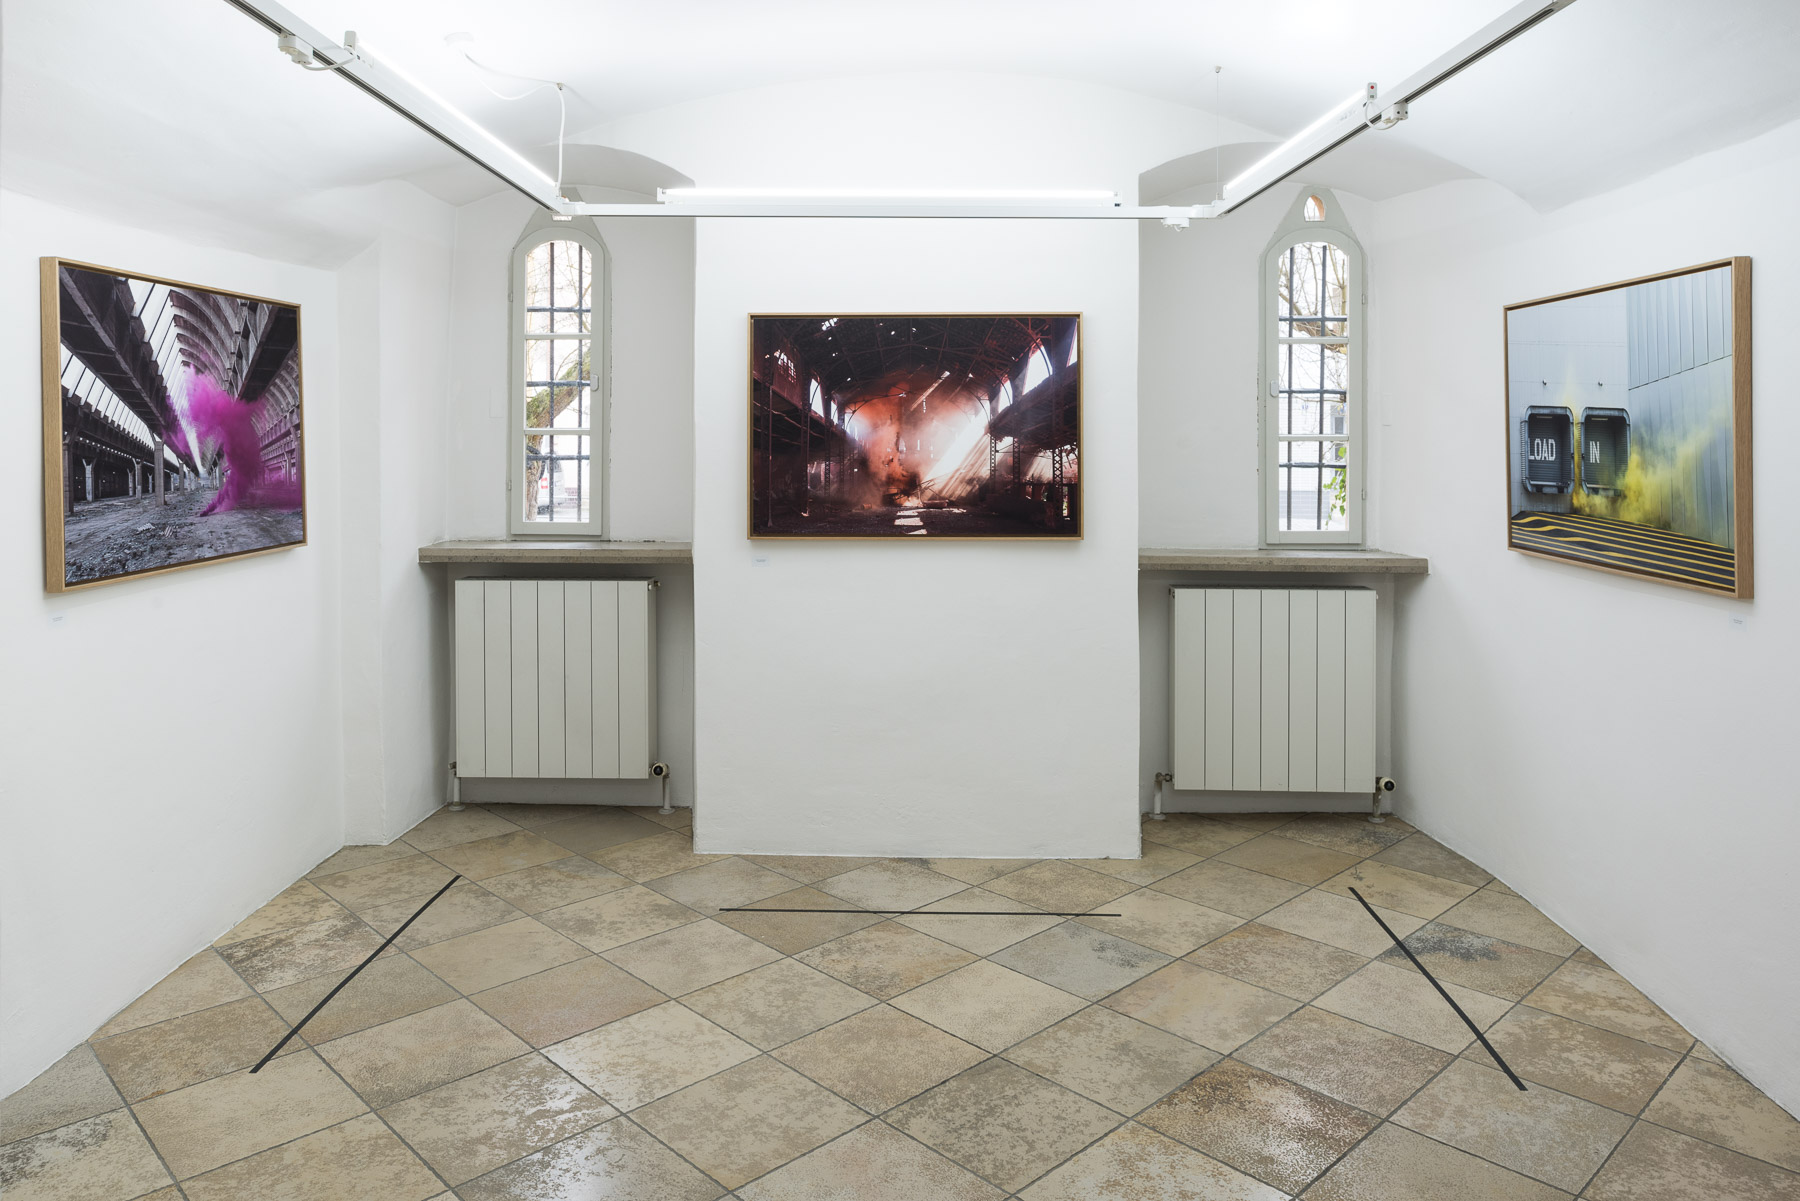 Isabelle-and-Alexis-Luftmuseum-7.jpg